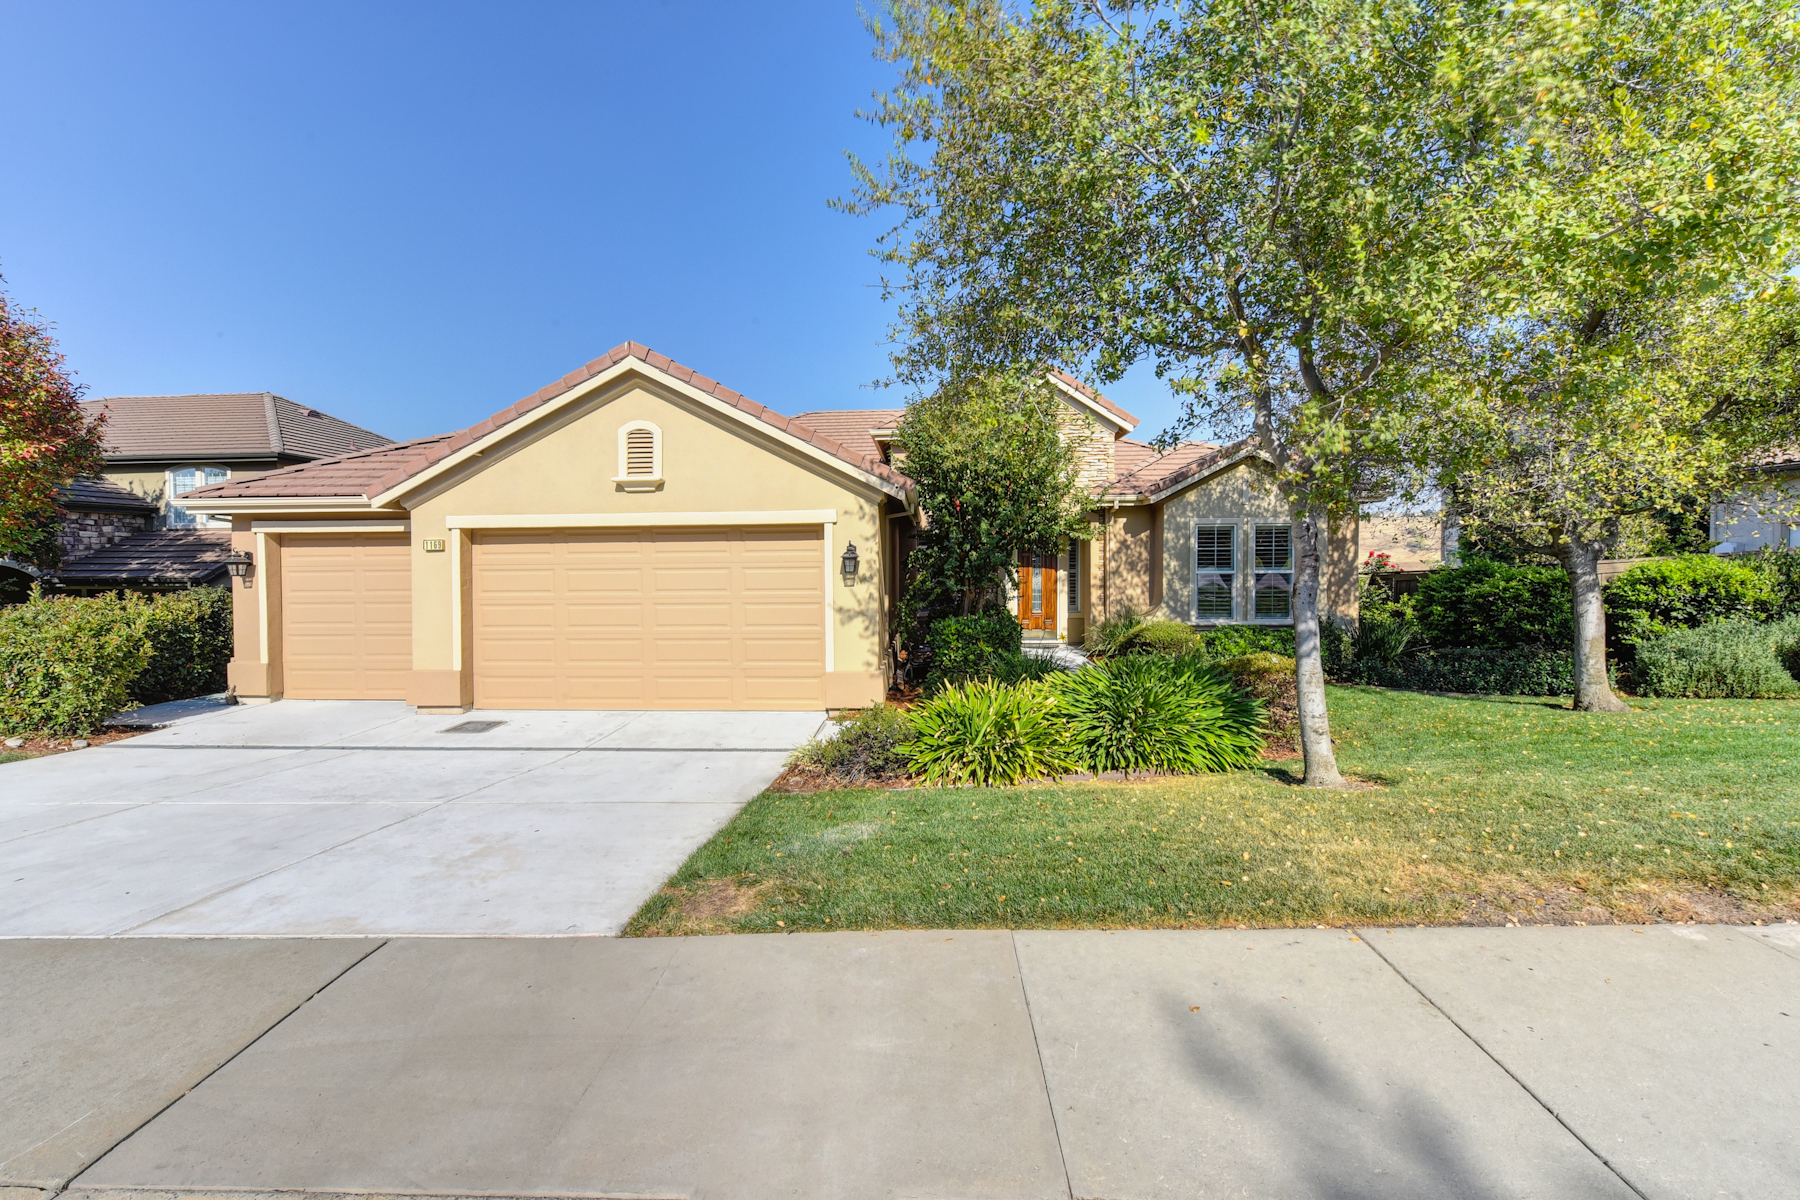 Single Family Home for Sale at 1169 Souza Drive, El Dorado Hills, CA 95762 1169 Souza Drive El Dorado Hills, California 95762 United States